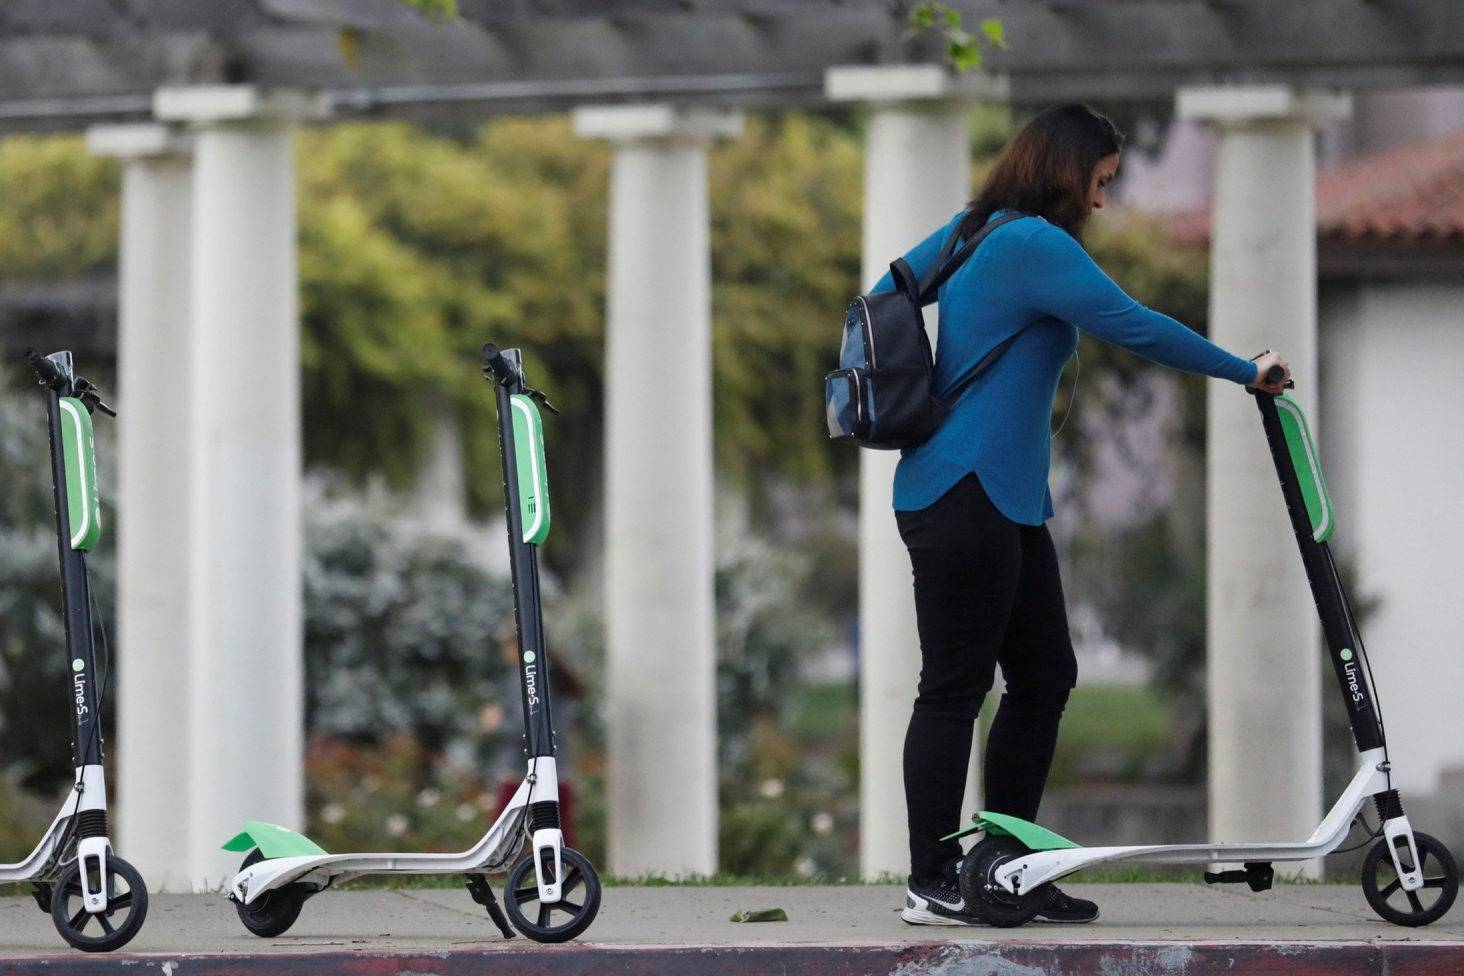 700 shared electric scooters to be let loose on Christchurch streets